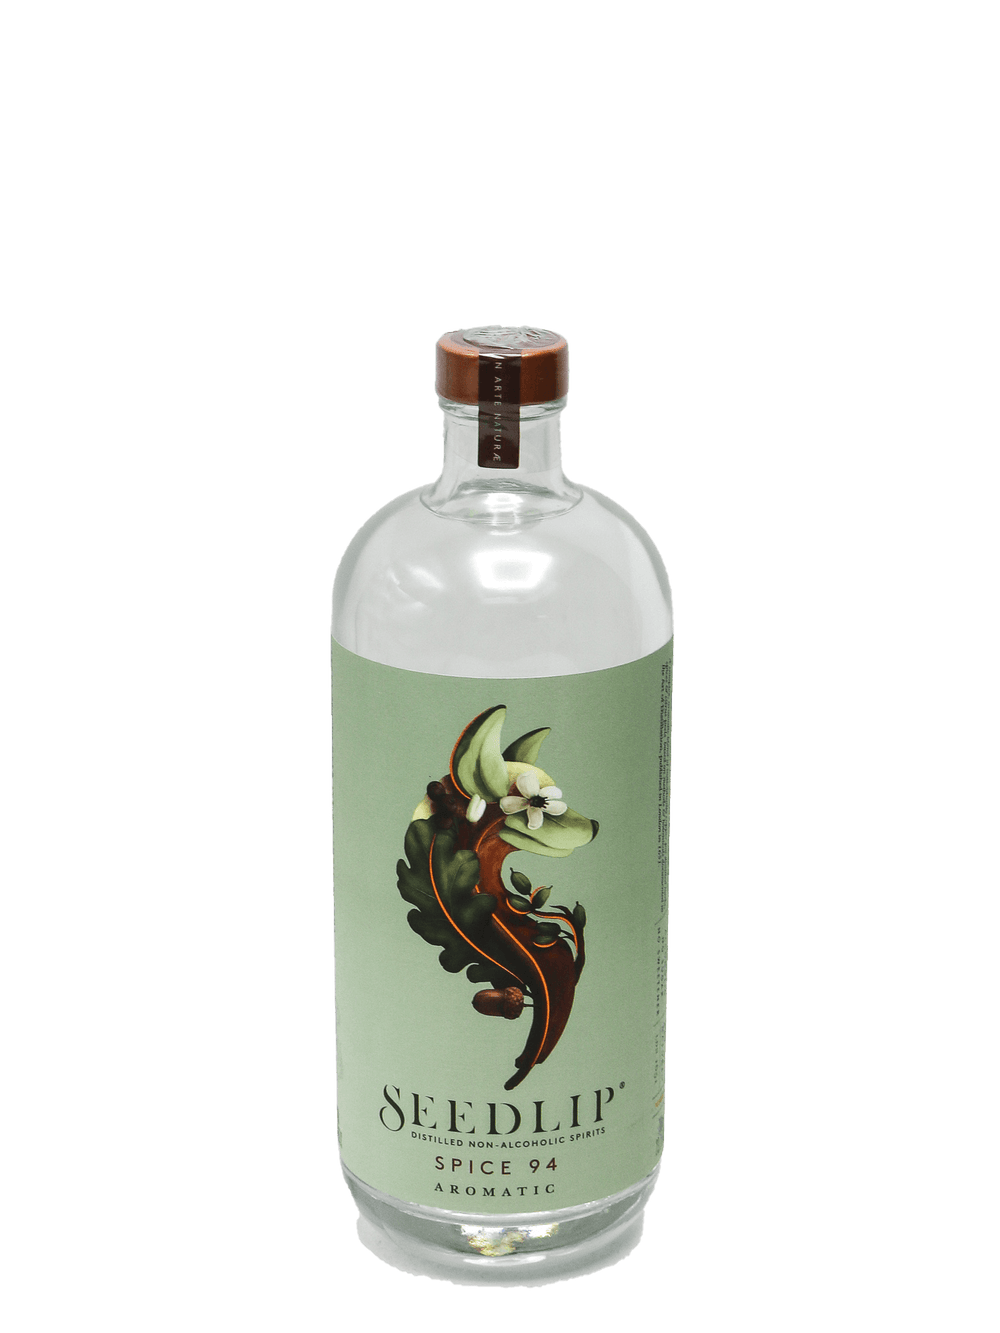 Seedlip Spice 94 750ml